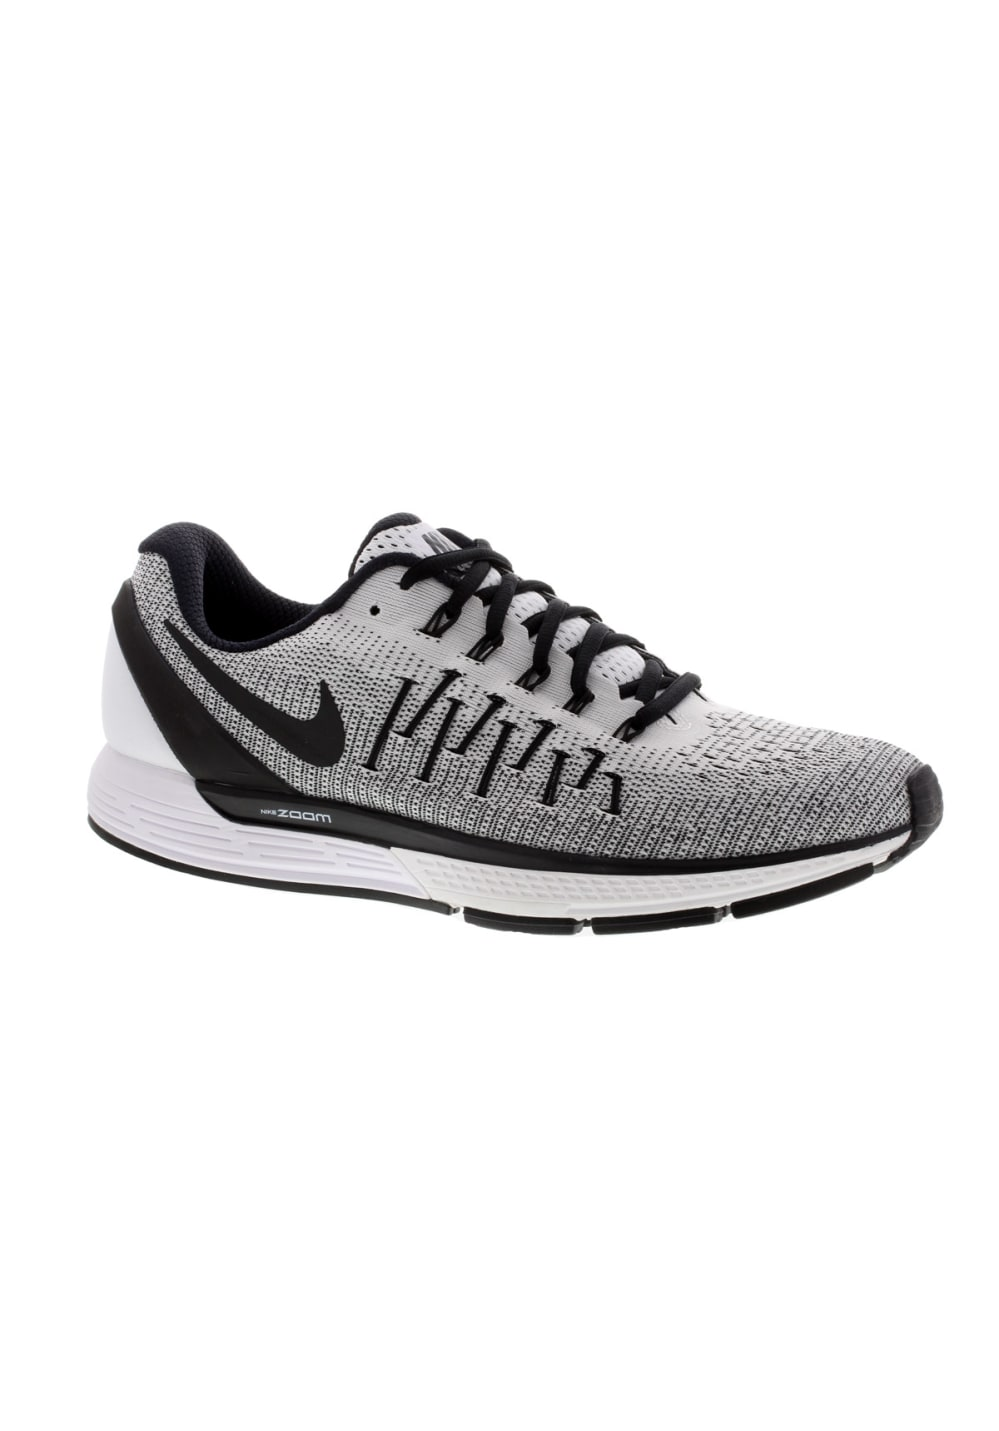 db66370835f Next. -60%. Nike. Air Zoom Odyssey 2 - Running shoes for Women. Regular  Price  Save 60% ...